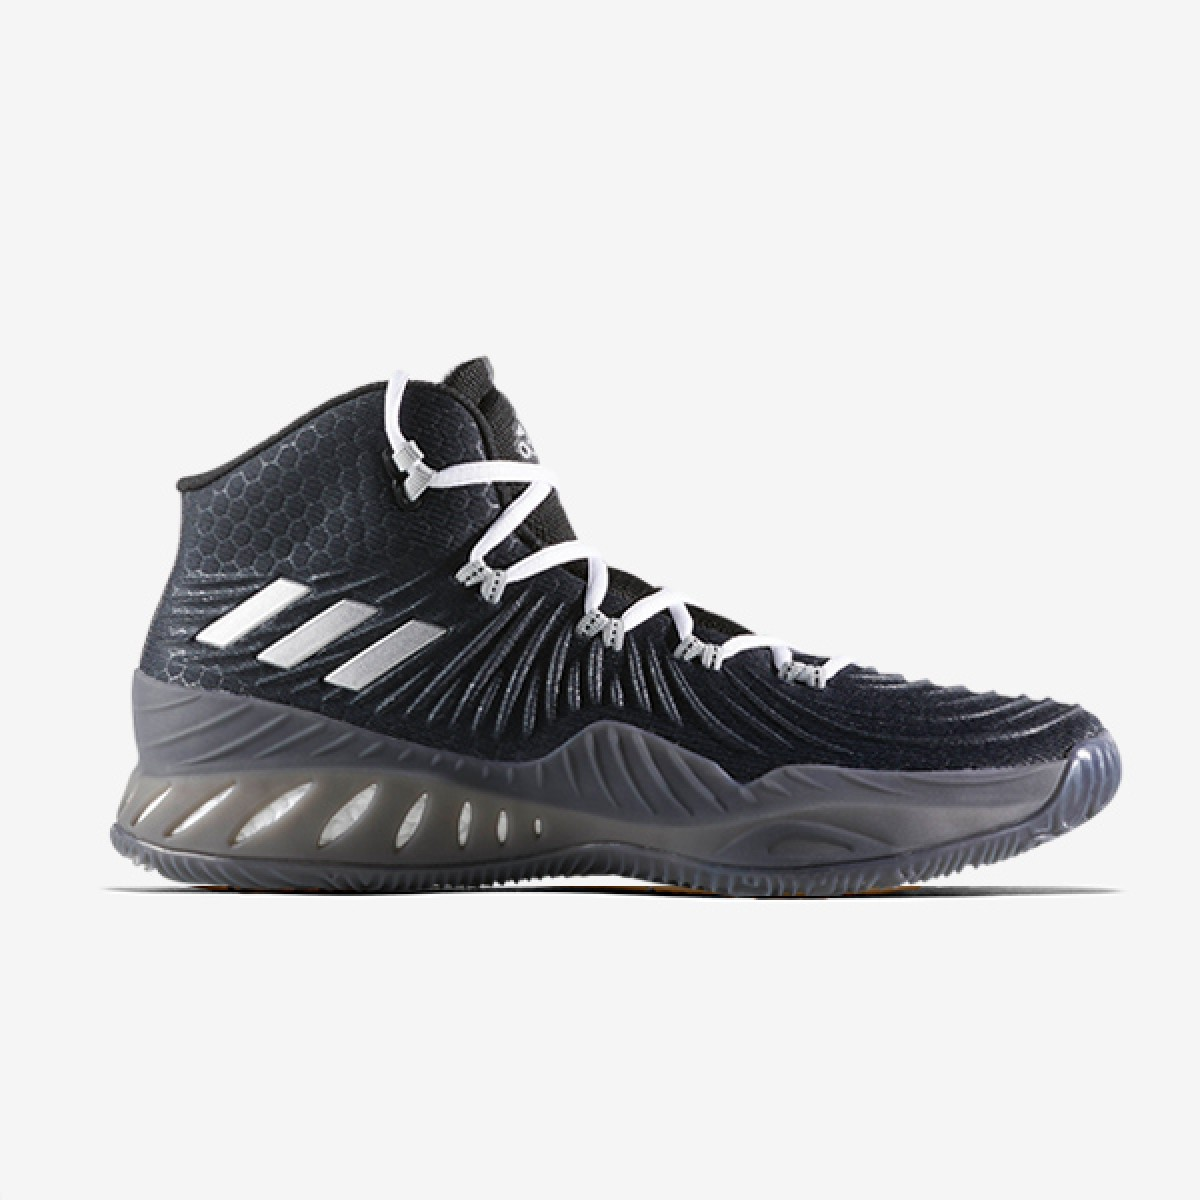 ADIDAS Crazy Explosive 2017 'Black/White'